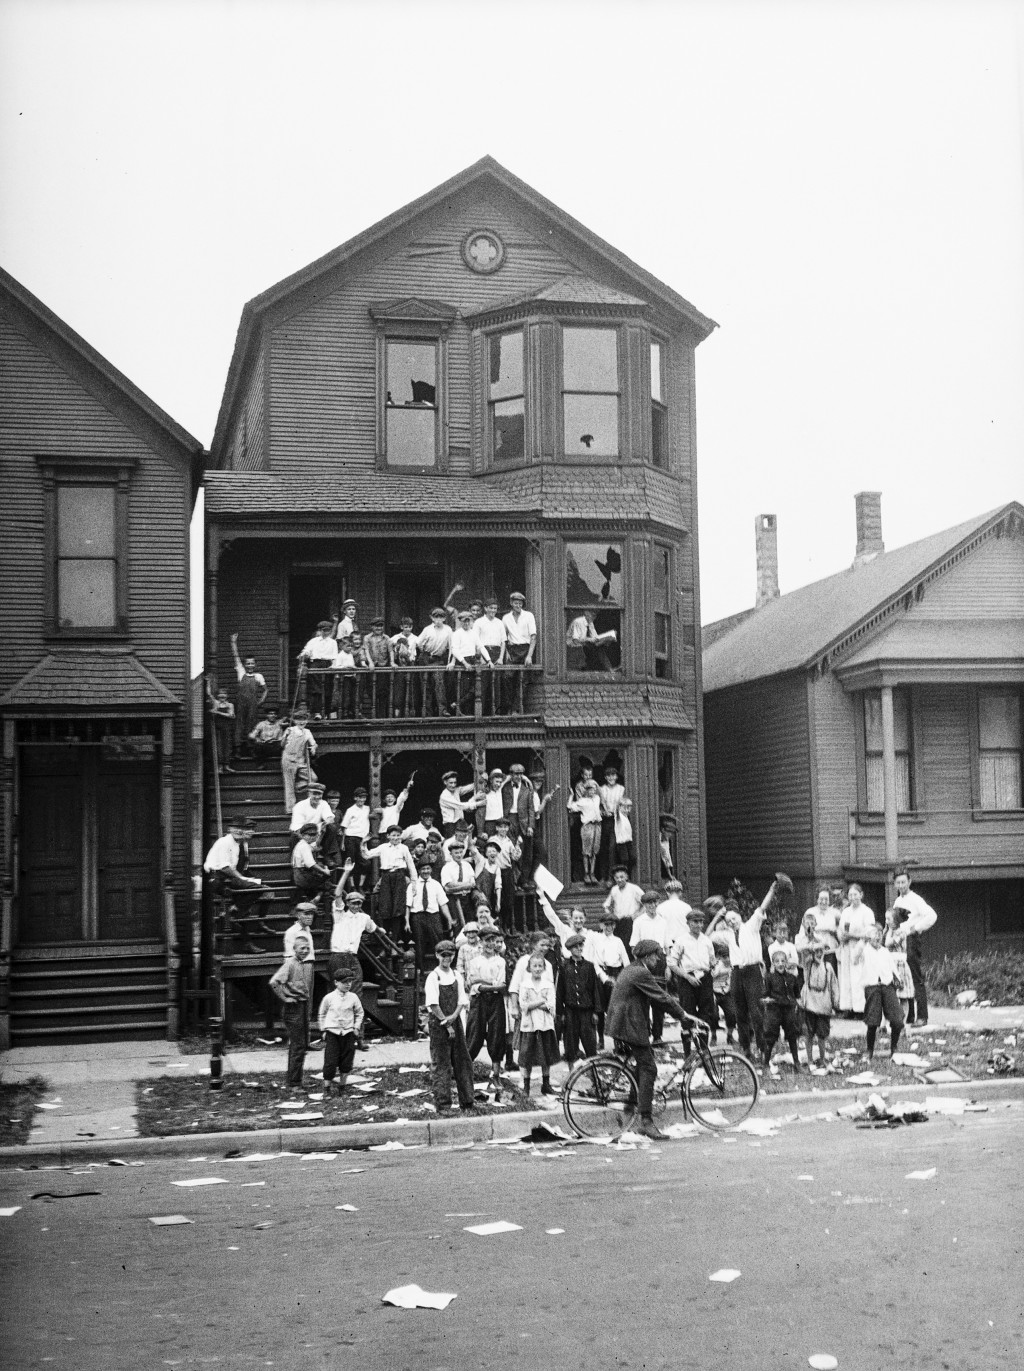 In this 1919 photo provided by the Chicago History Museum, a crowd gathers at a house that has been vandalized and looted during the race riots in Chi...